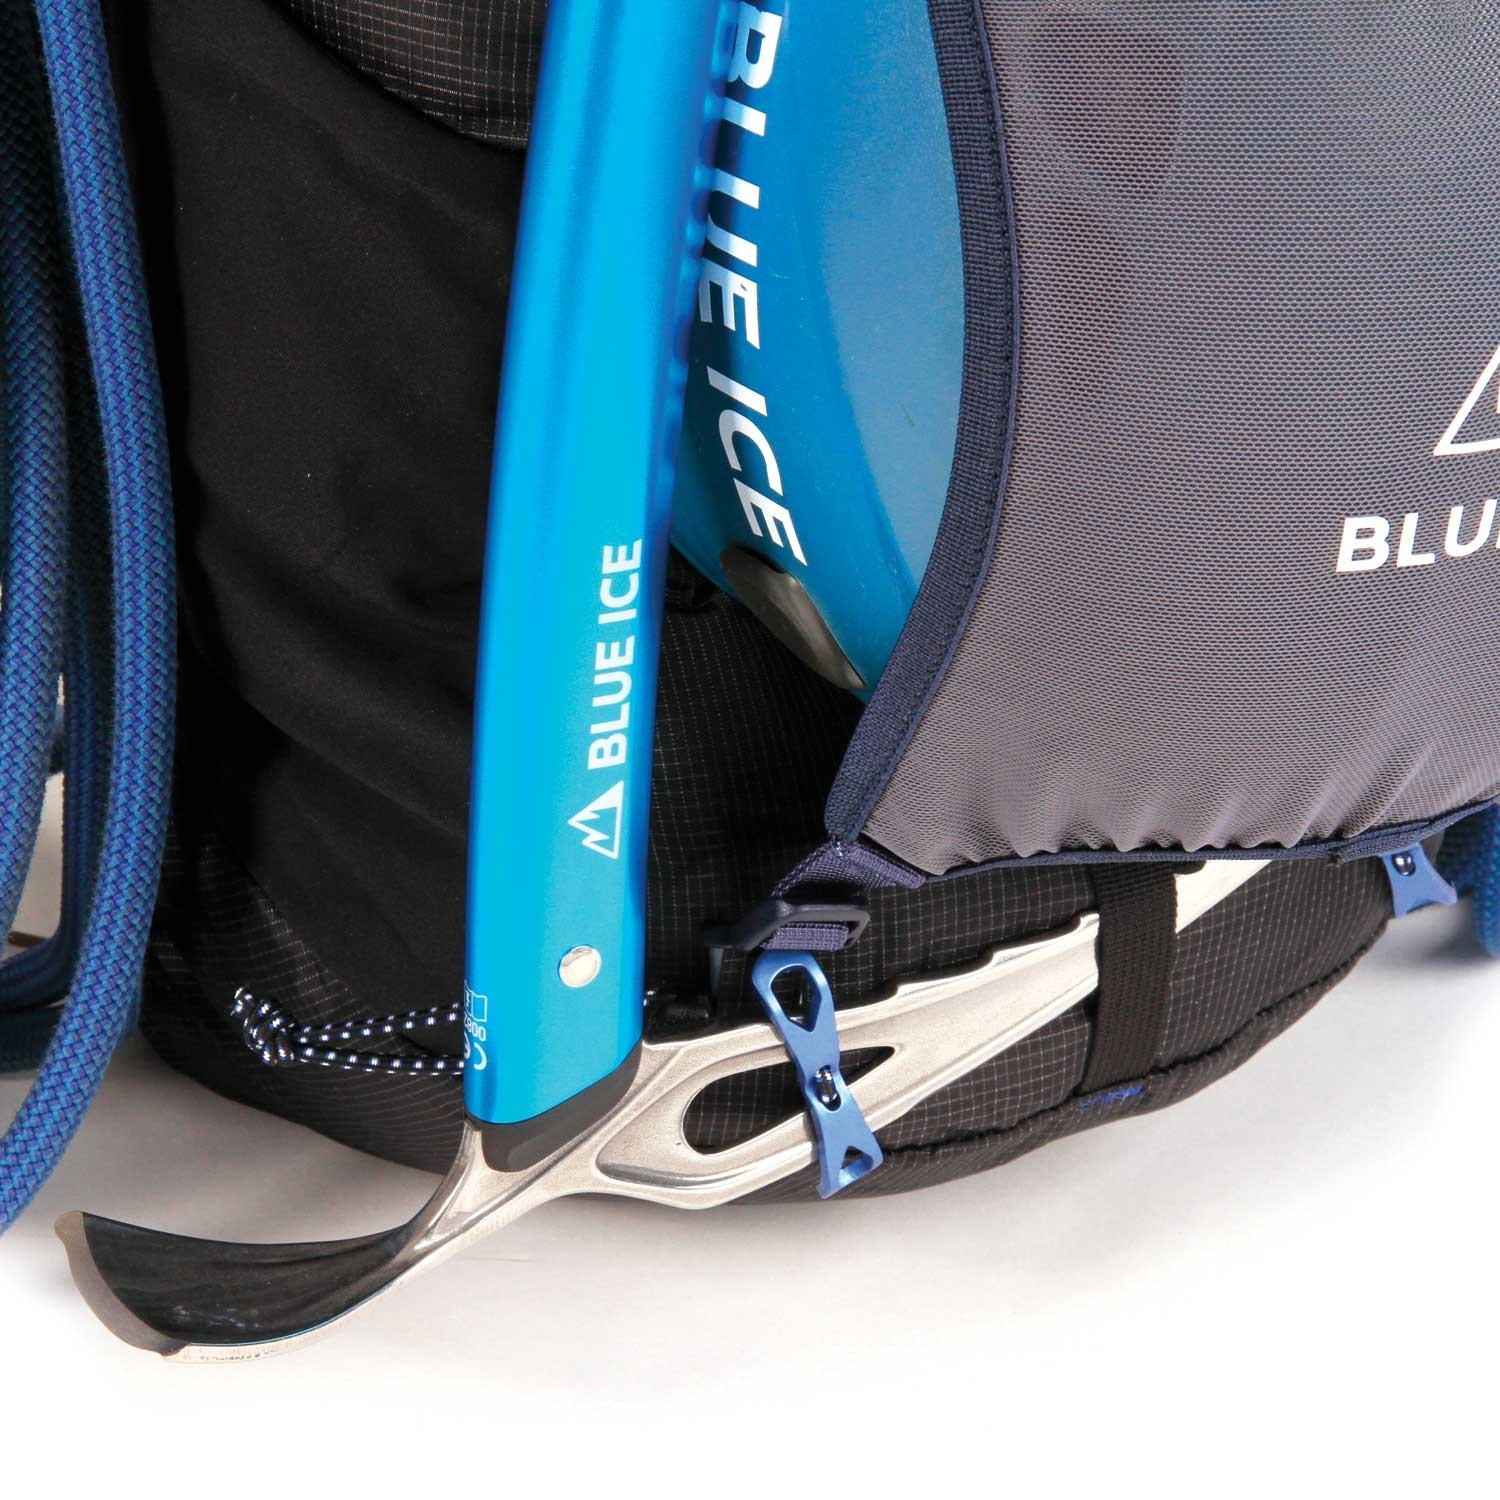 Blue Ice Dragonfly 25L Rucksack - Black - ice axe